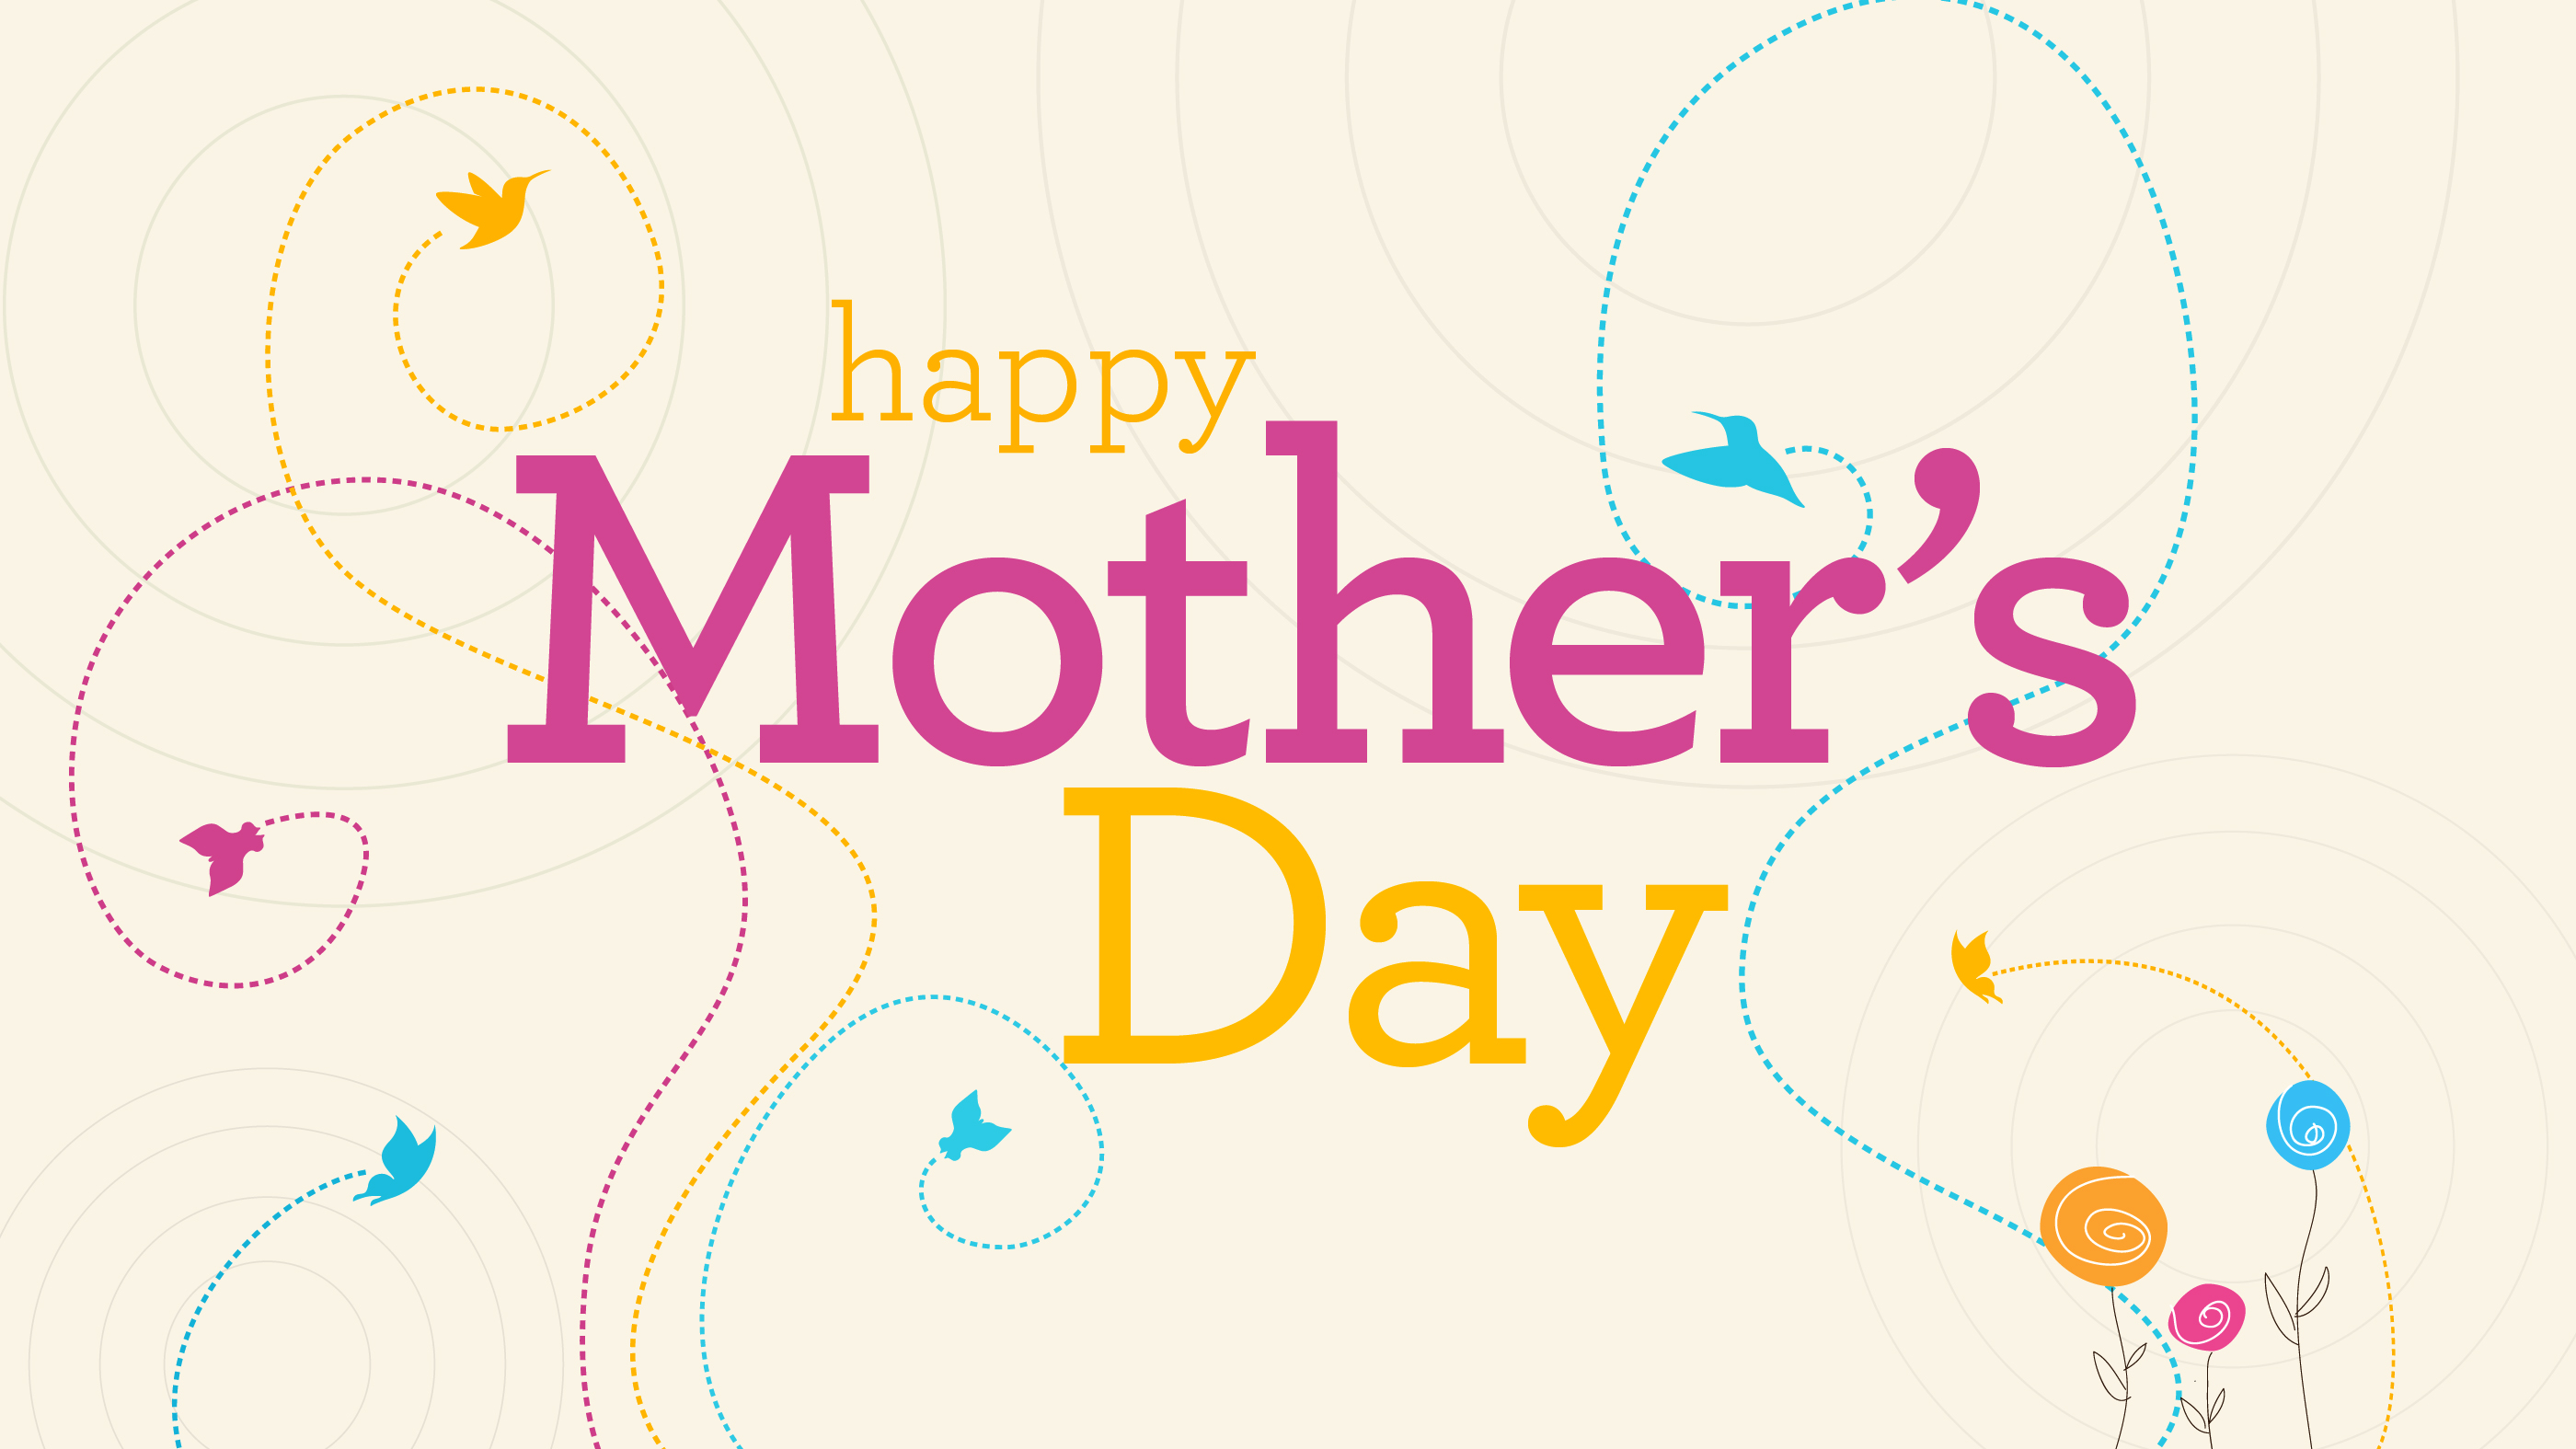 download mothers day quotes Large Images [2800x1575] for your 2800x1575